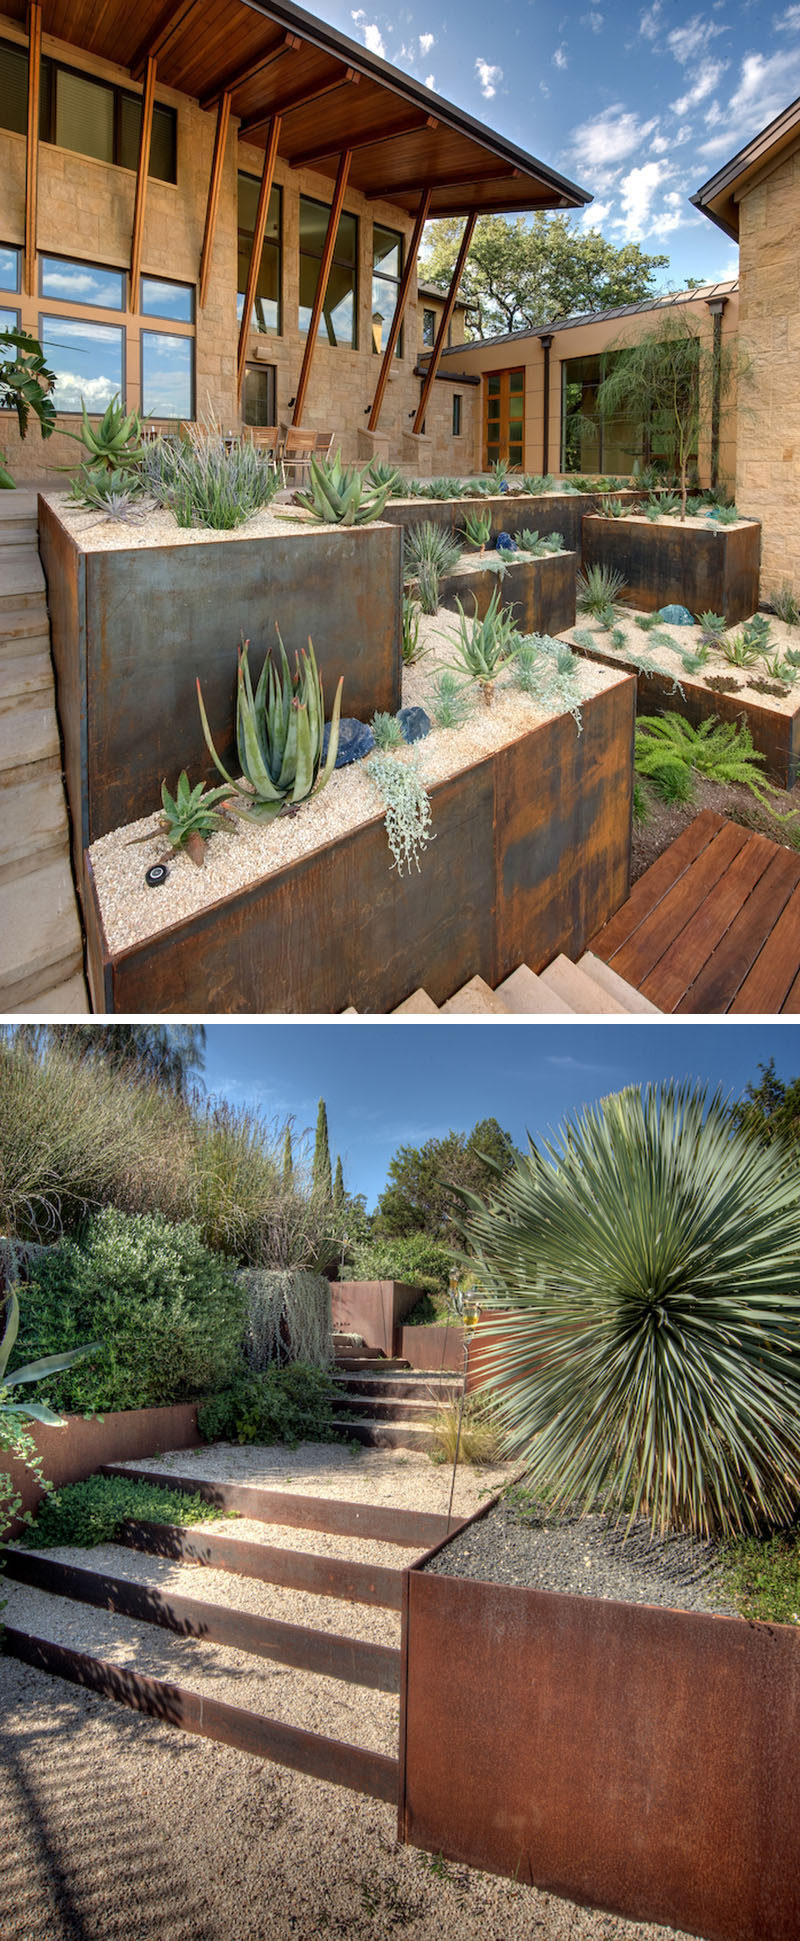 9 Ideas For Including Weathering Steel Planters In Your Garden // The use of succulents and other desert plants in these weathered steel planters create a low maintenance garden that looks good all year round. #SteelGardenPlanters #WeatheredSteelPlanters #CortenSteelPlanters #Landscaping #GardenIdeas #PlanterIdeas